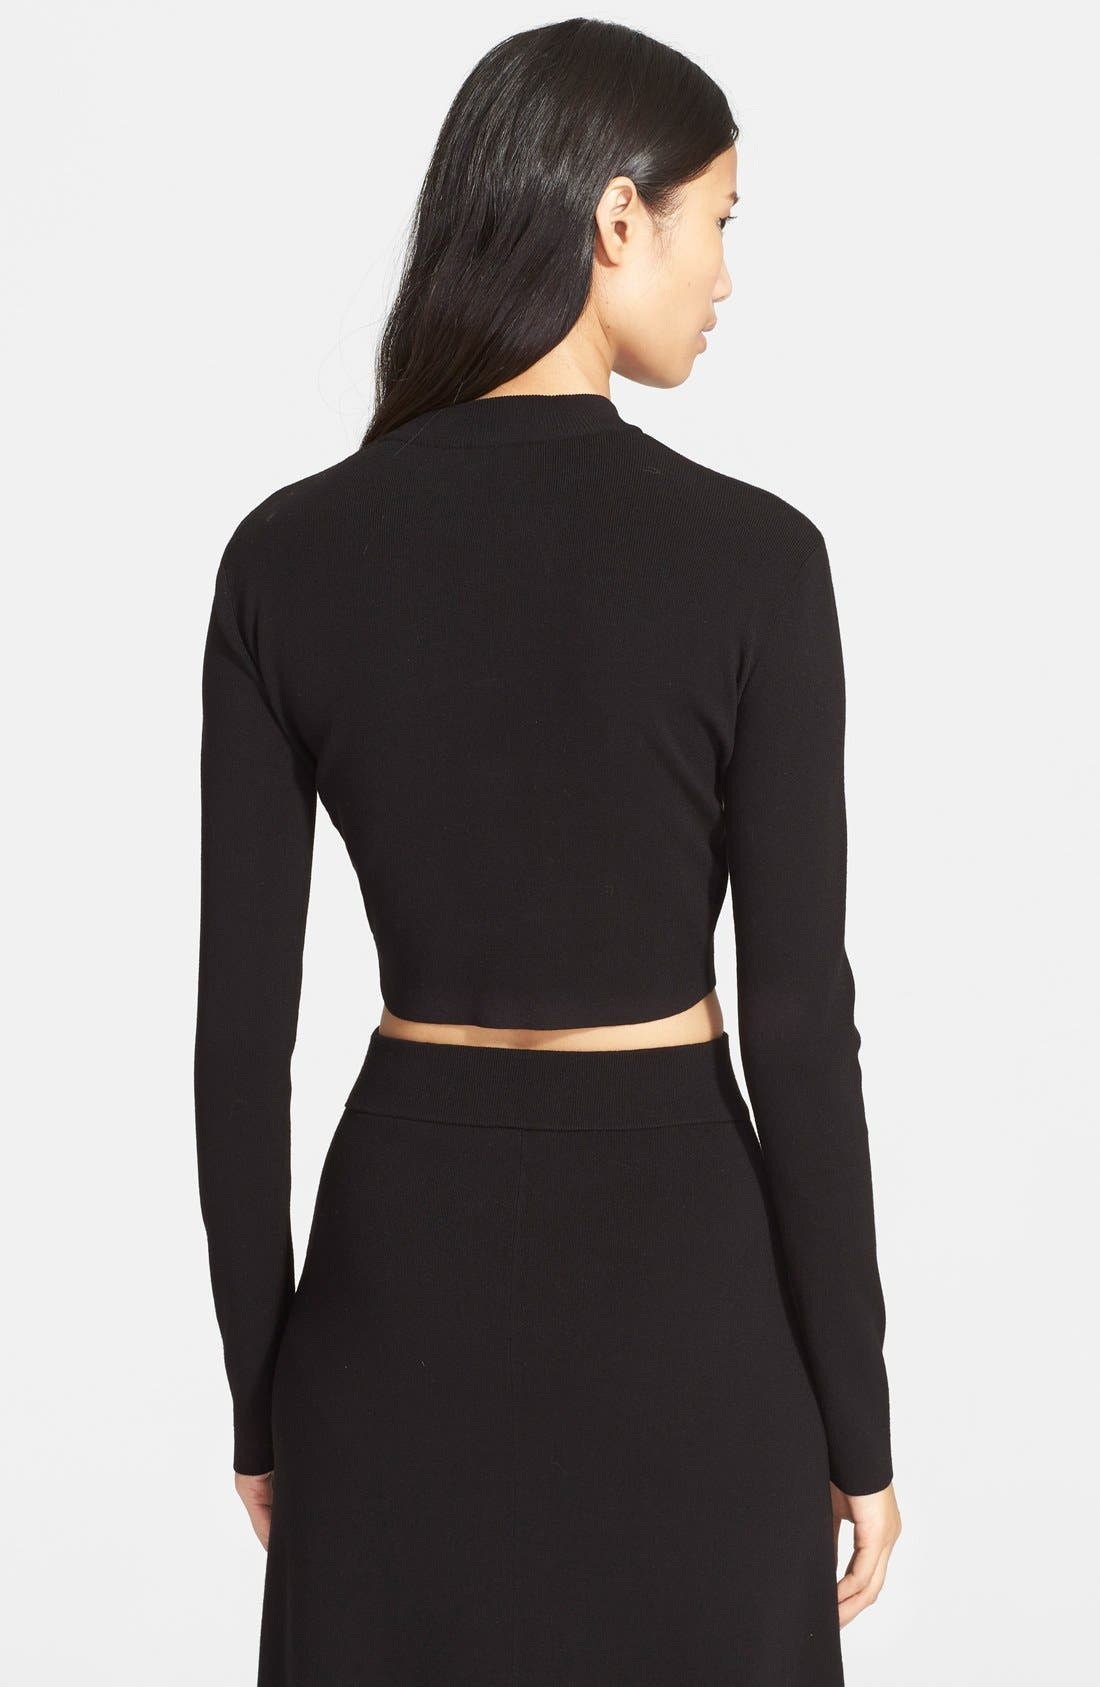 'Ford' Crop Sweater,                             Alternate thumbnail 2, color,                             Black